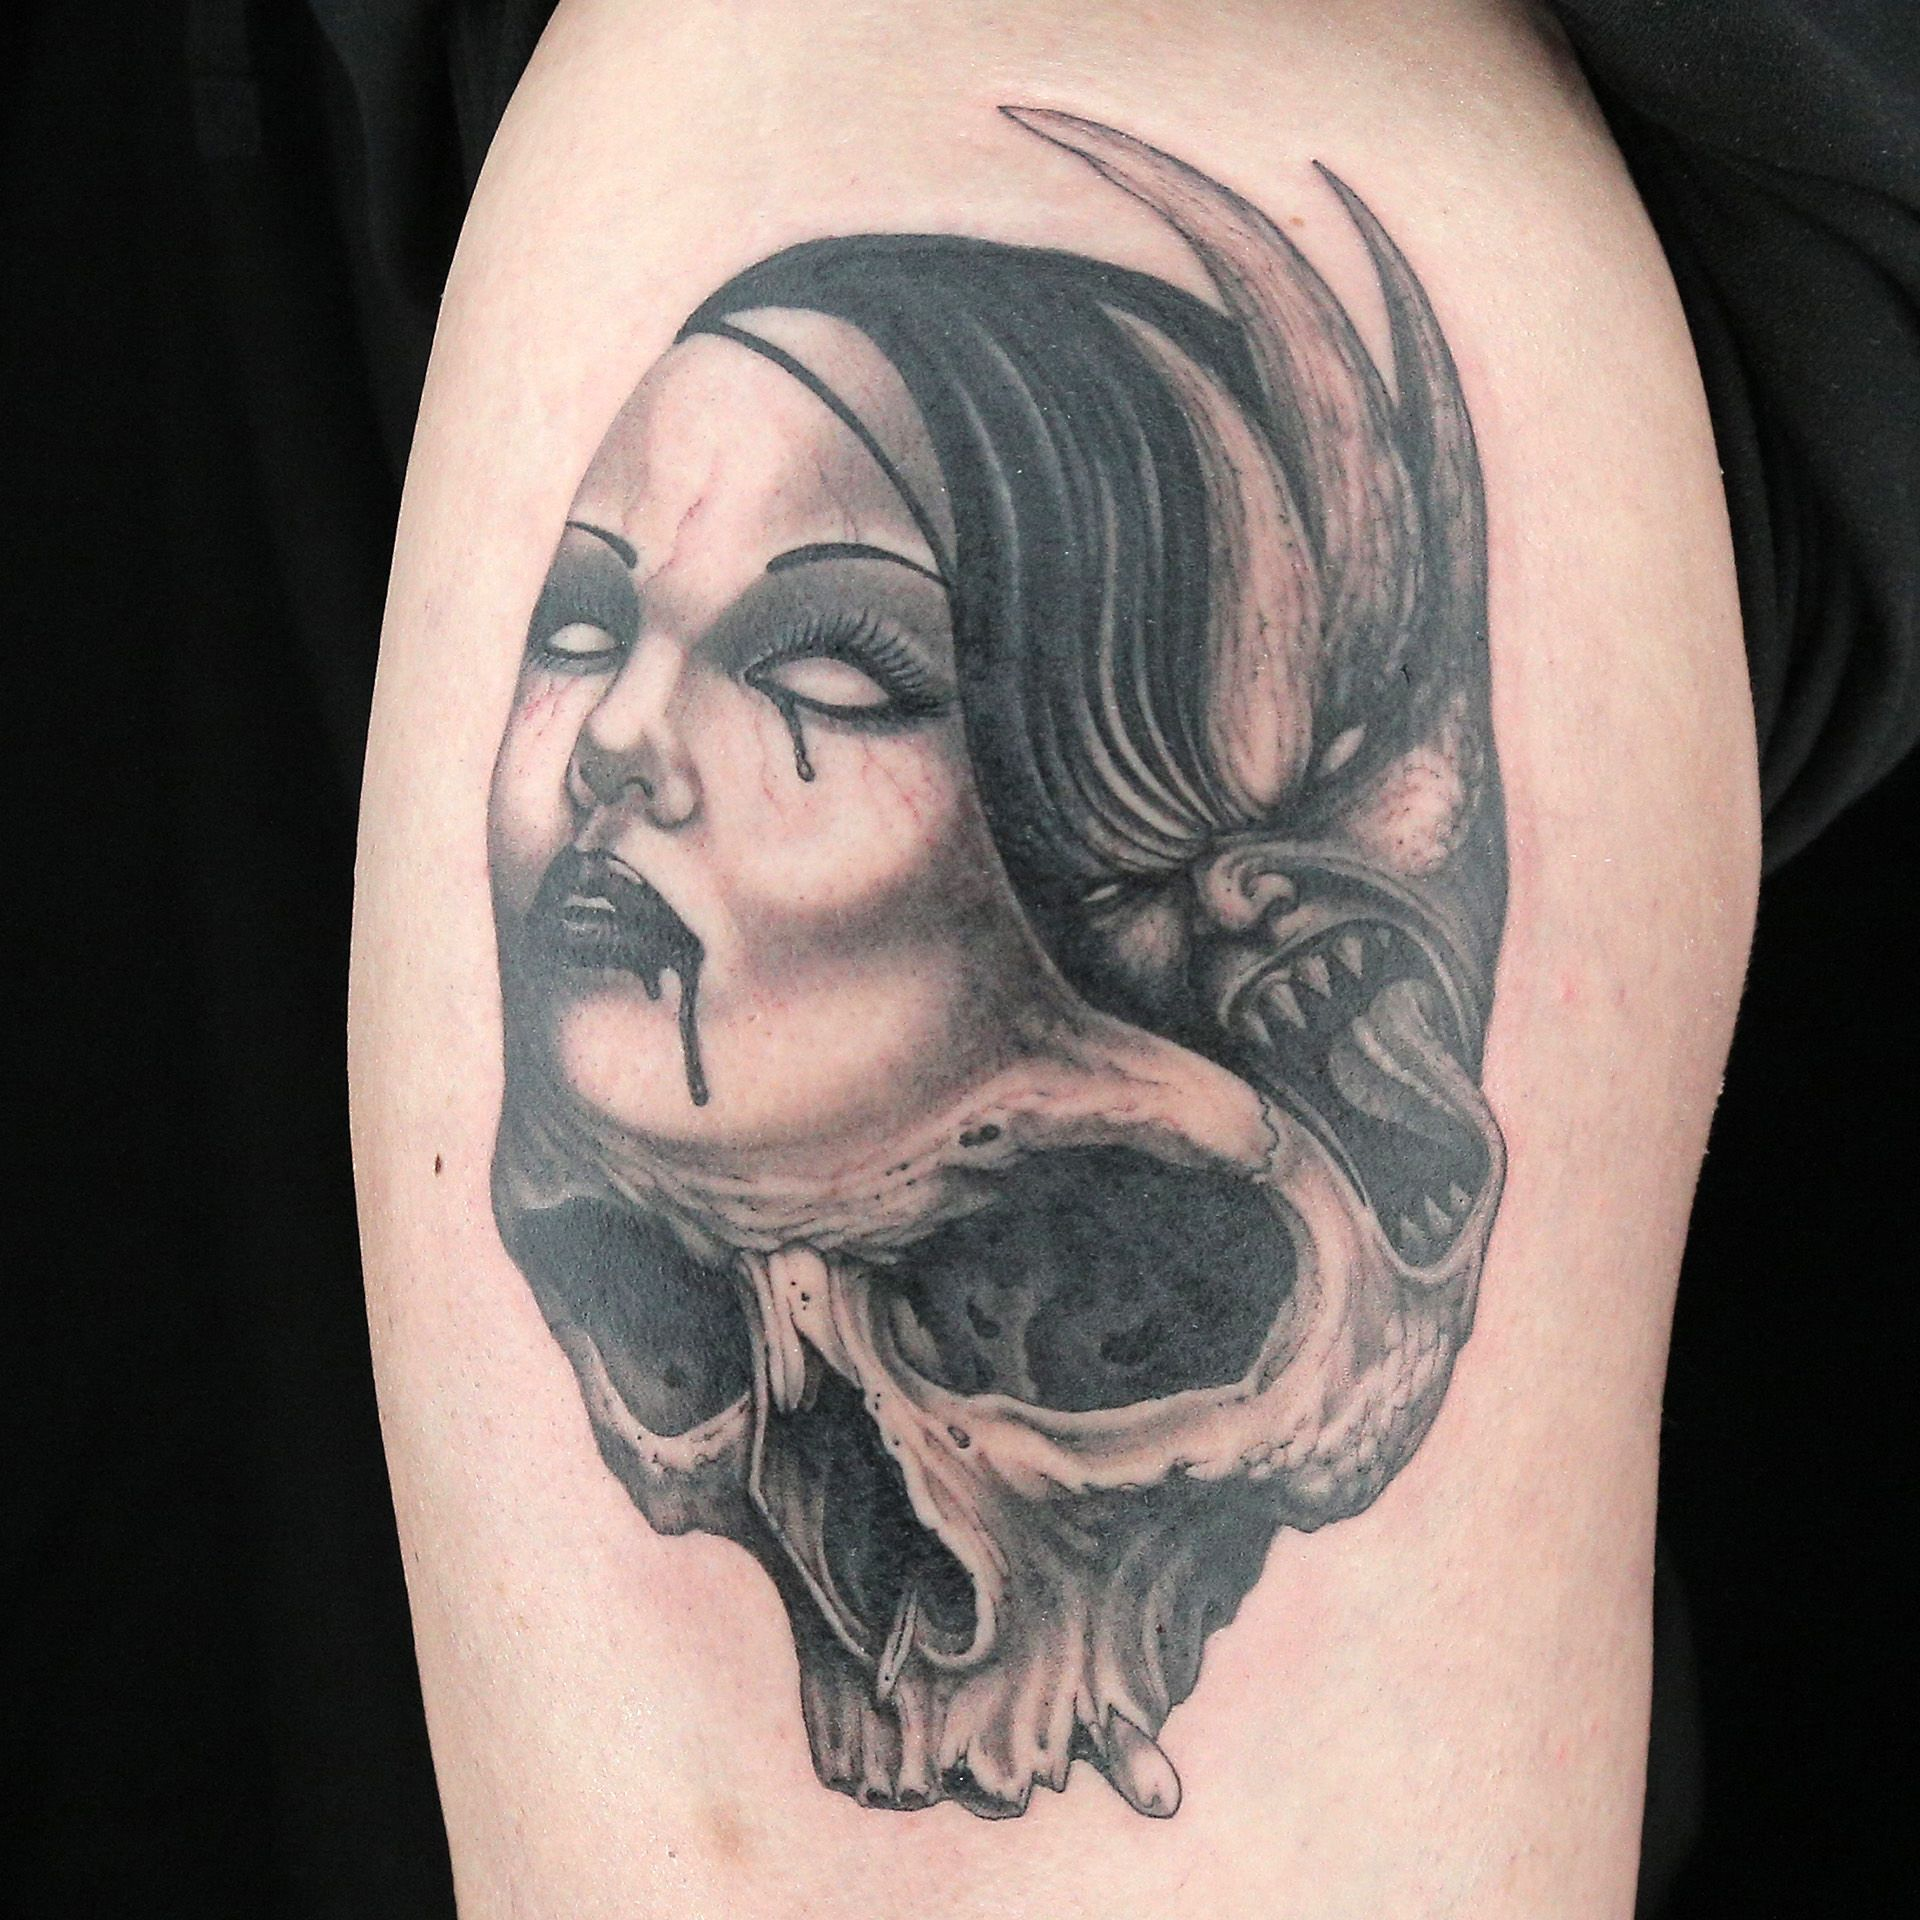 Tattoo by Steve Tefft Tattoos, Ink master, Portrait tattoo